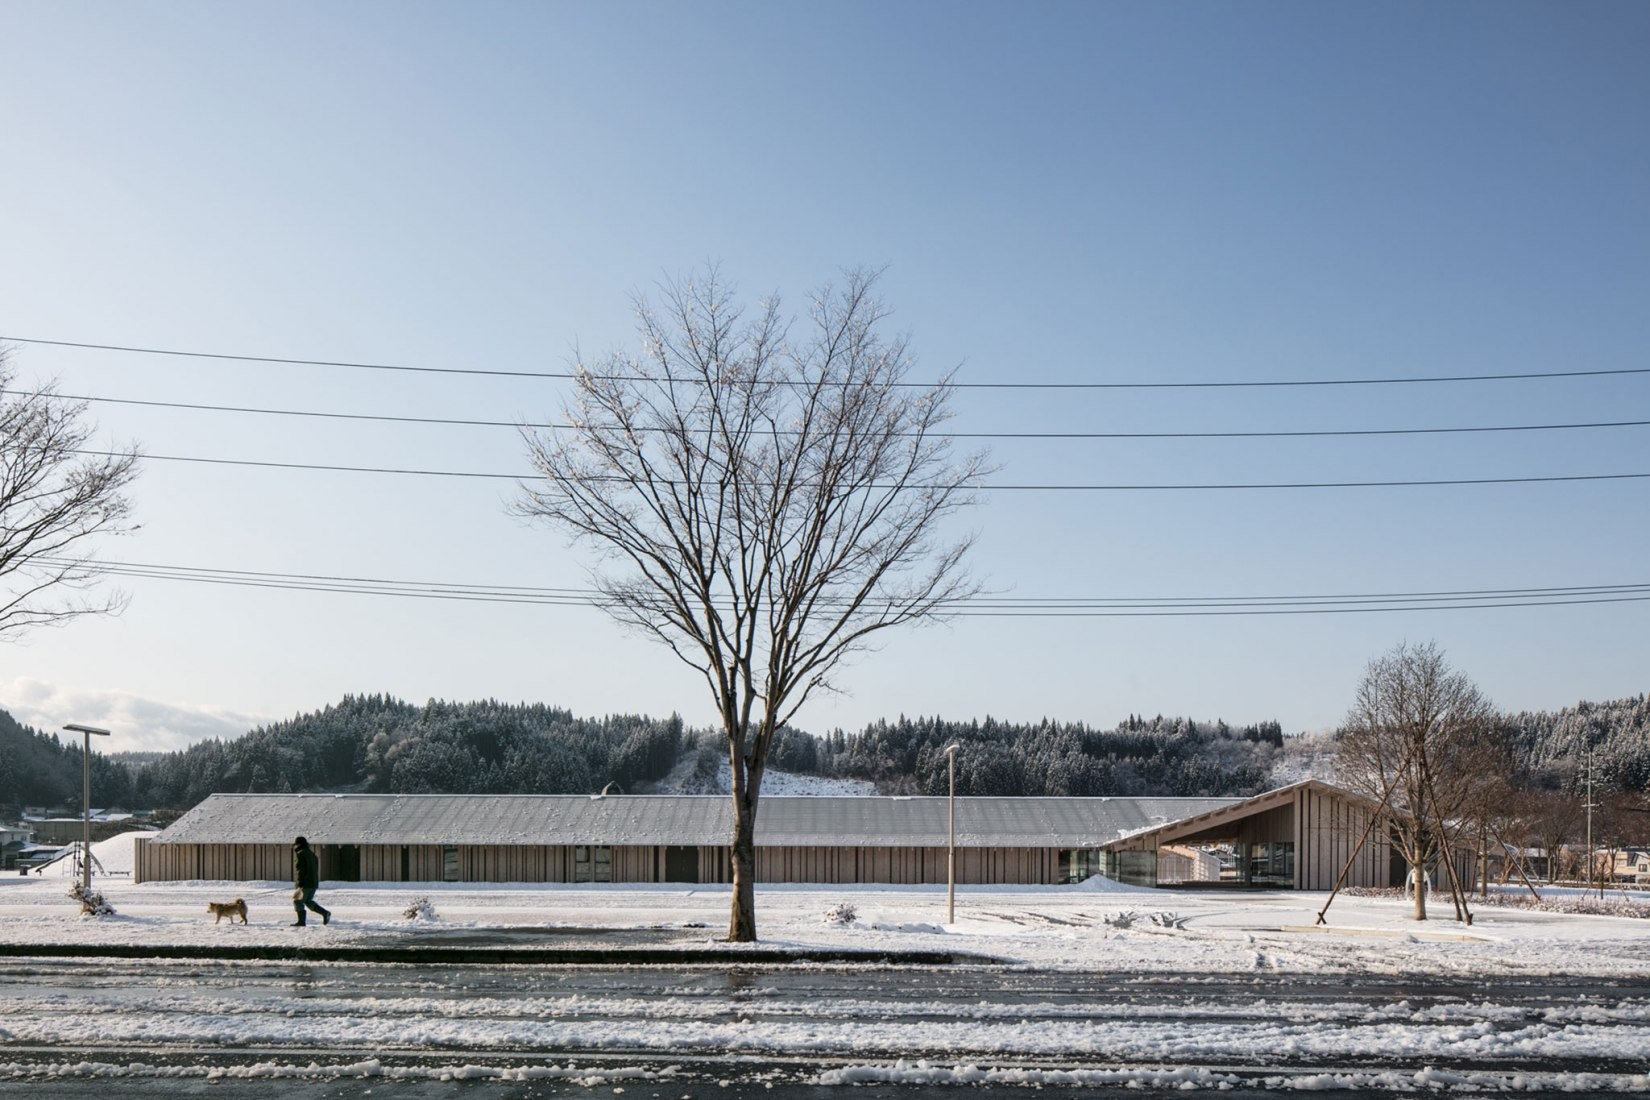 Yunoeki Oyu Community Center by Kengo Kuma and Associates. Photograph by Kawasumi Kobayashi Kenji Photograph Office